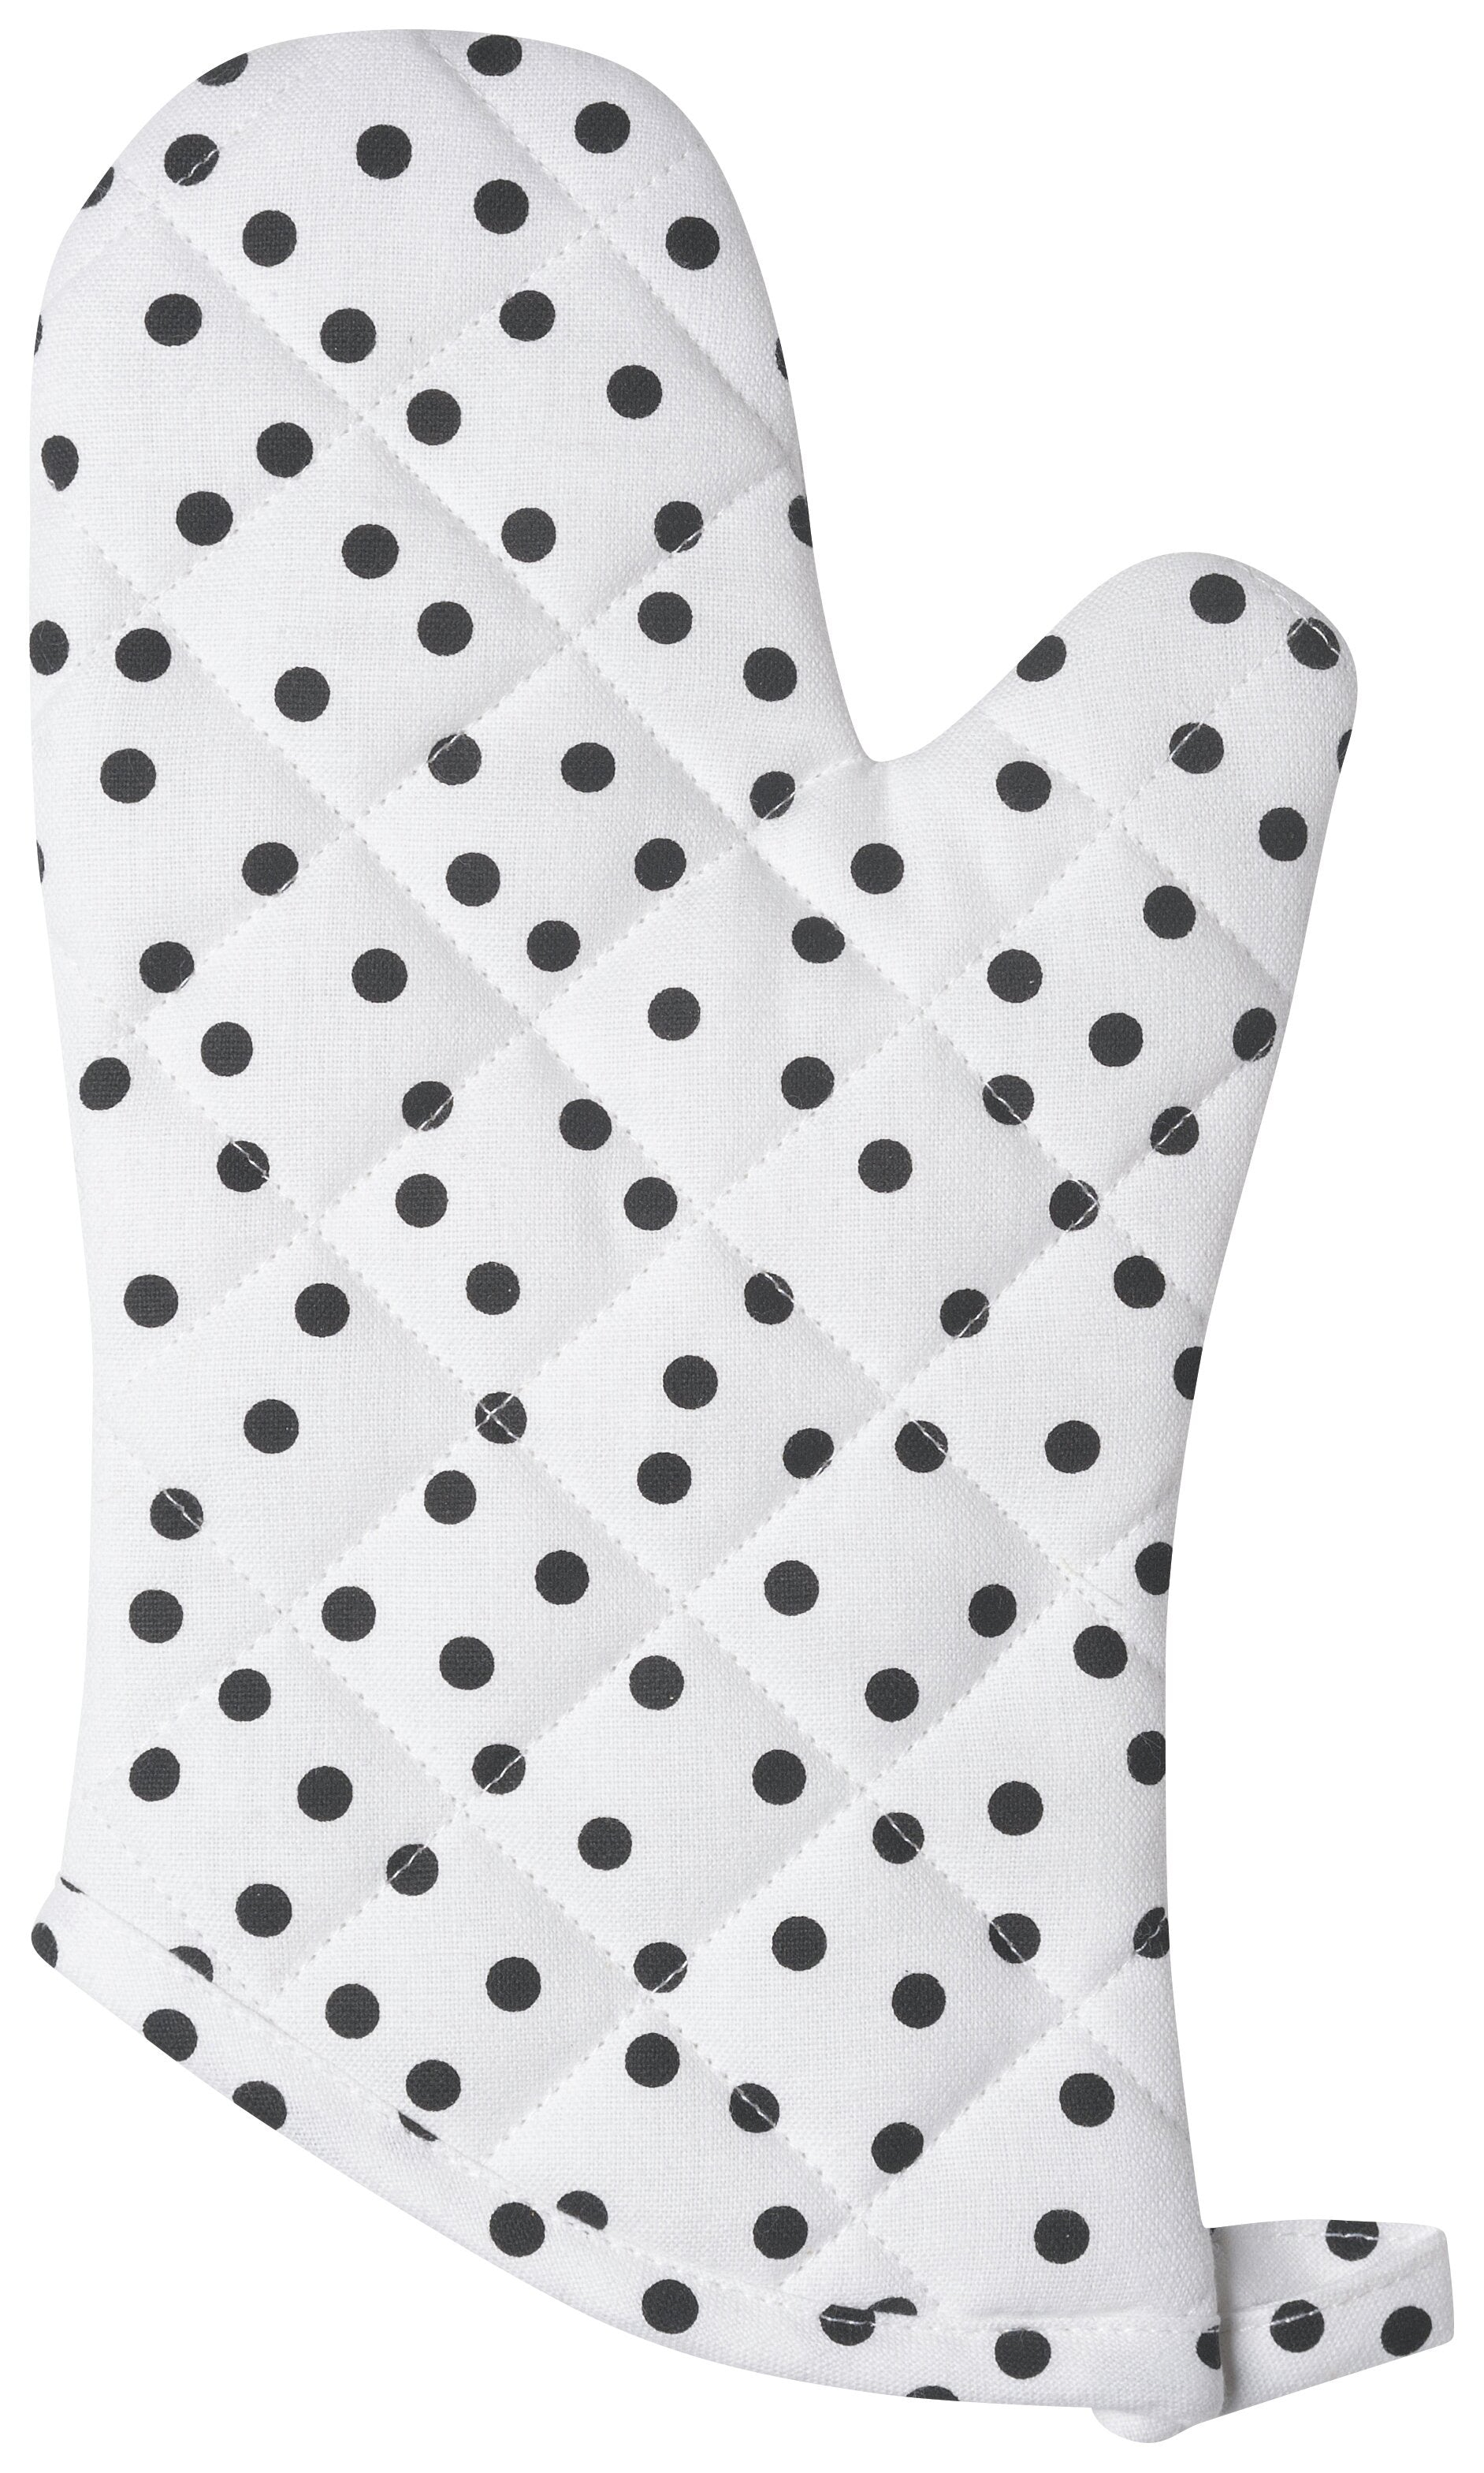 NOW Designs Oven Mitt - Lulu